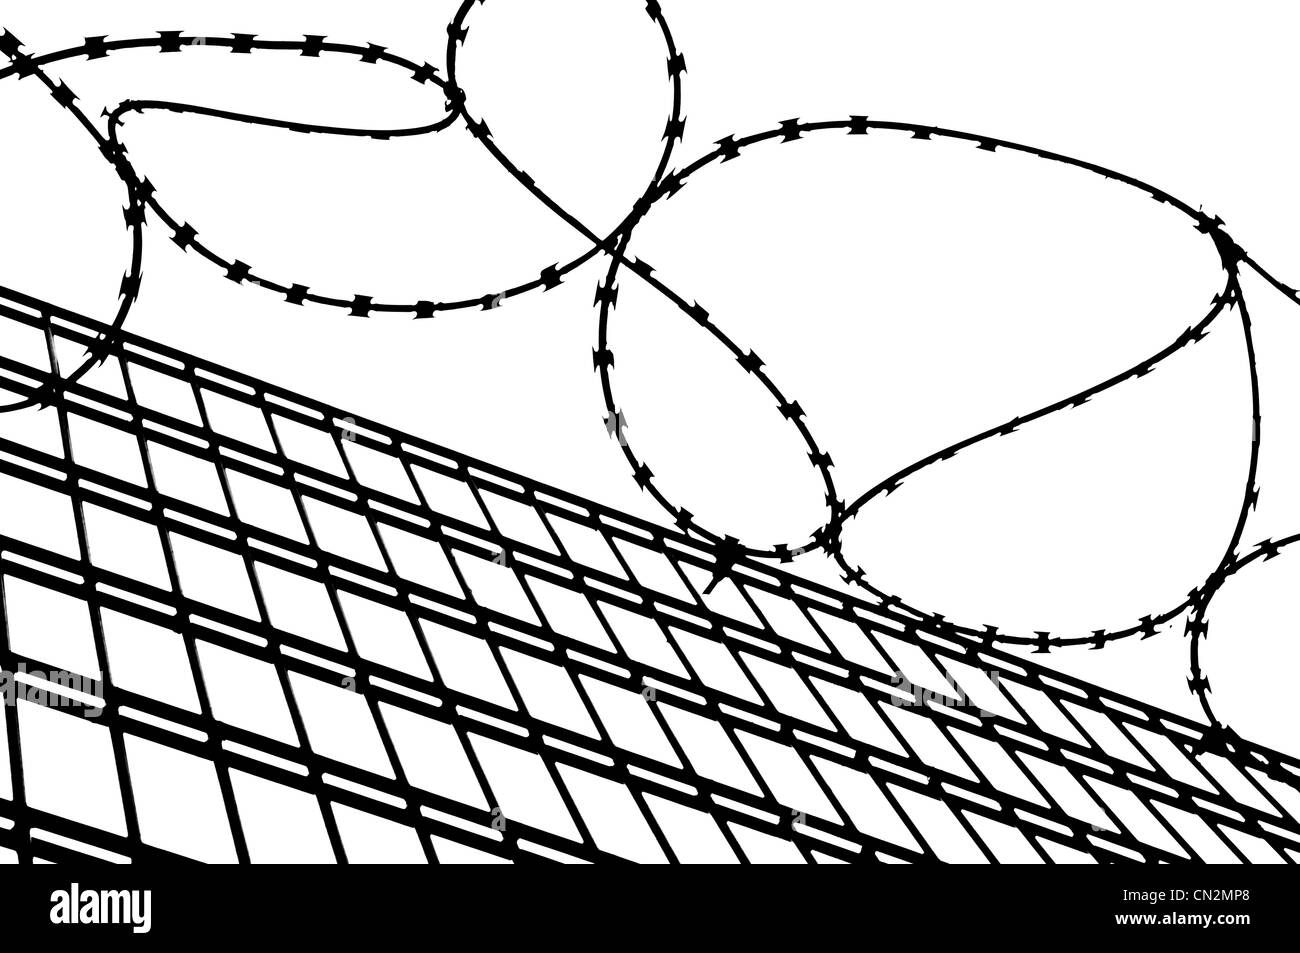 Security fence stock image